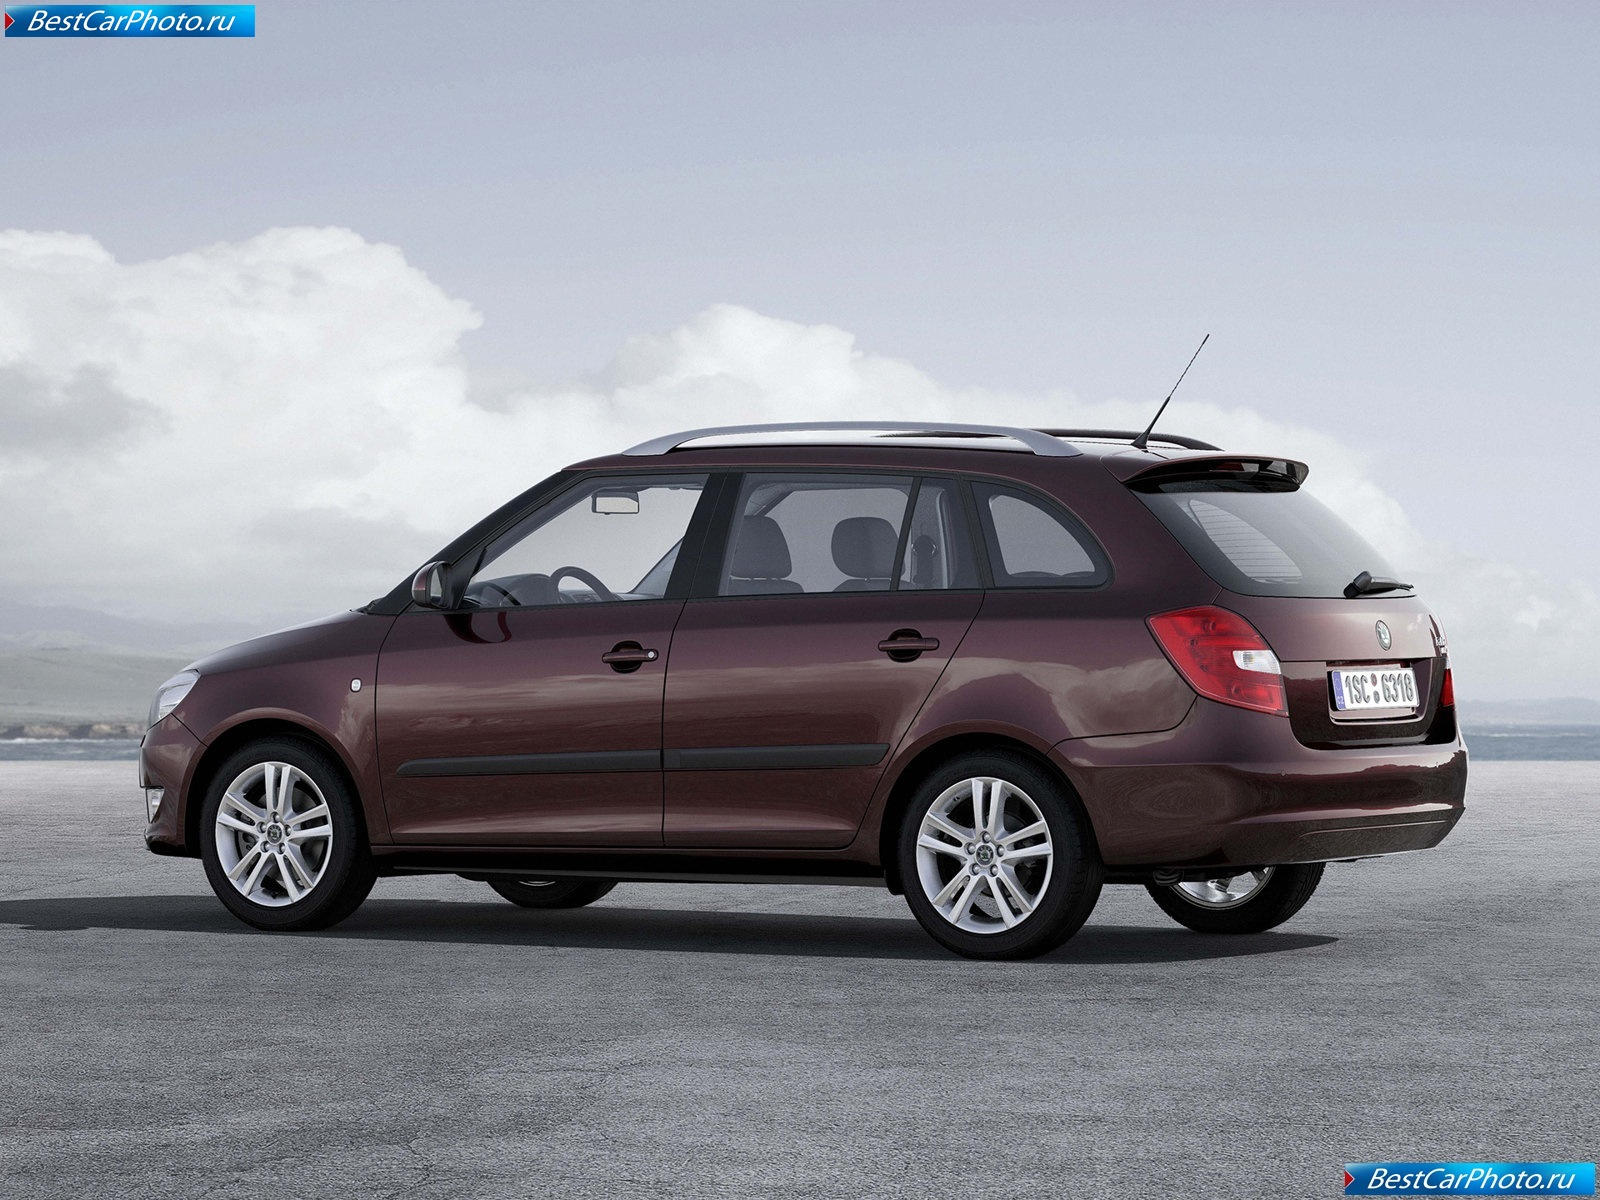 2008 Skoda Fabia Combi GreenLine photo - 1